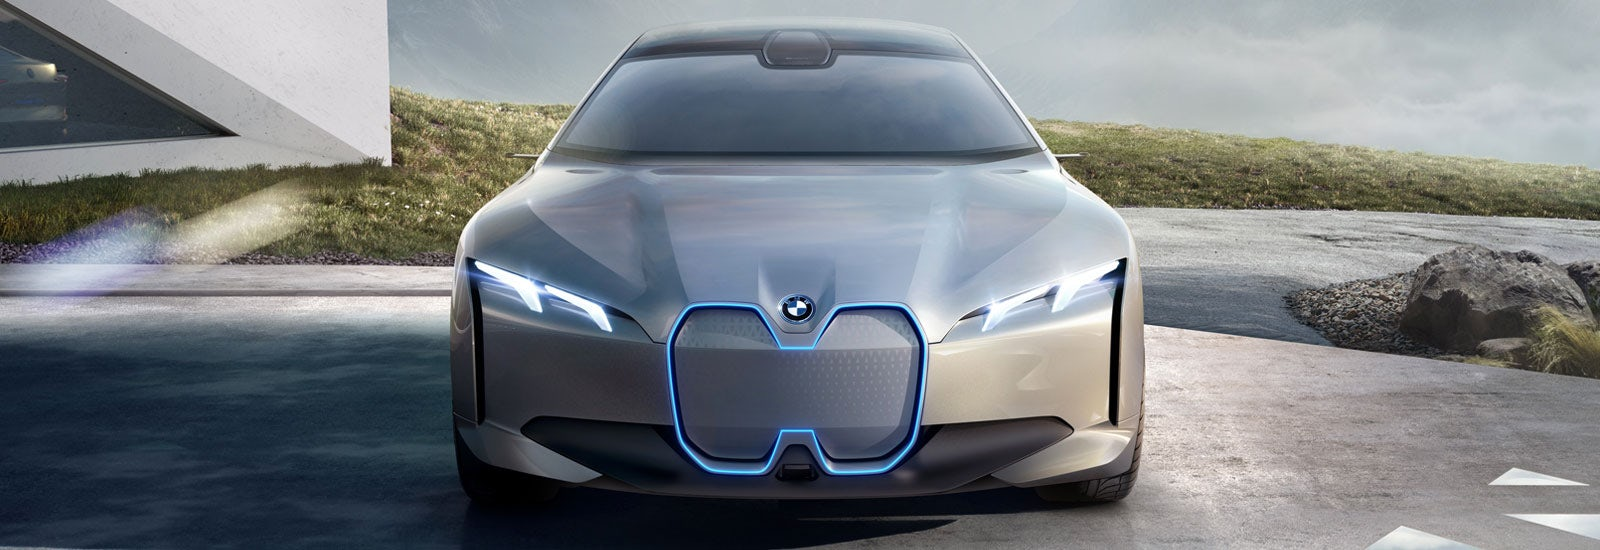 Bmw I Vision Dynamics Concept Parked Viewed From The Front